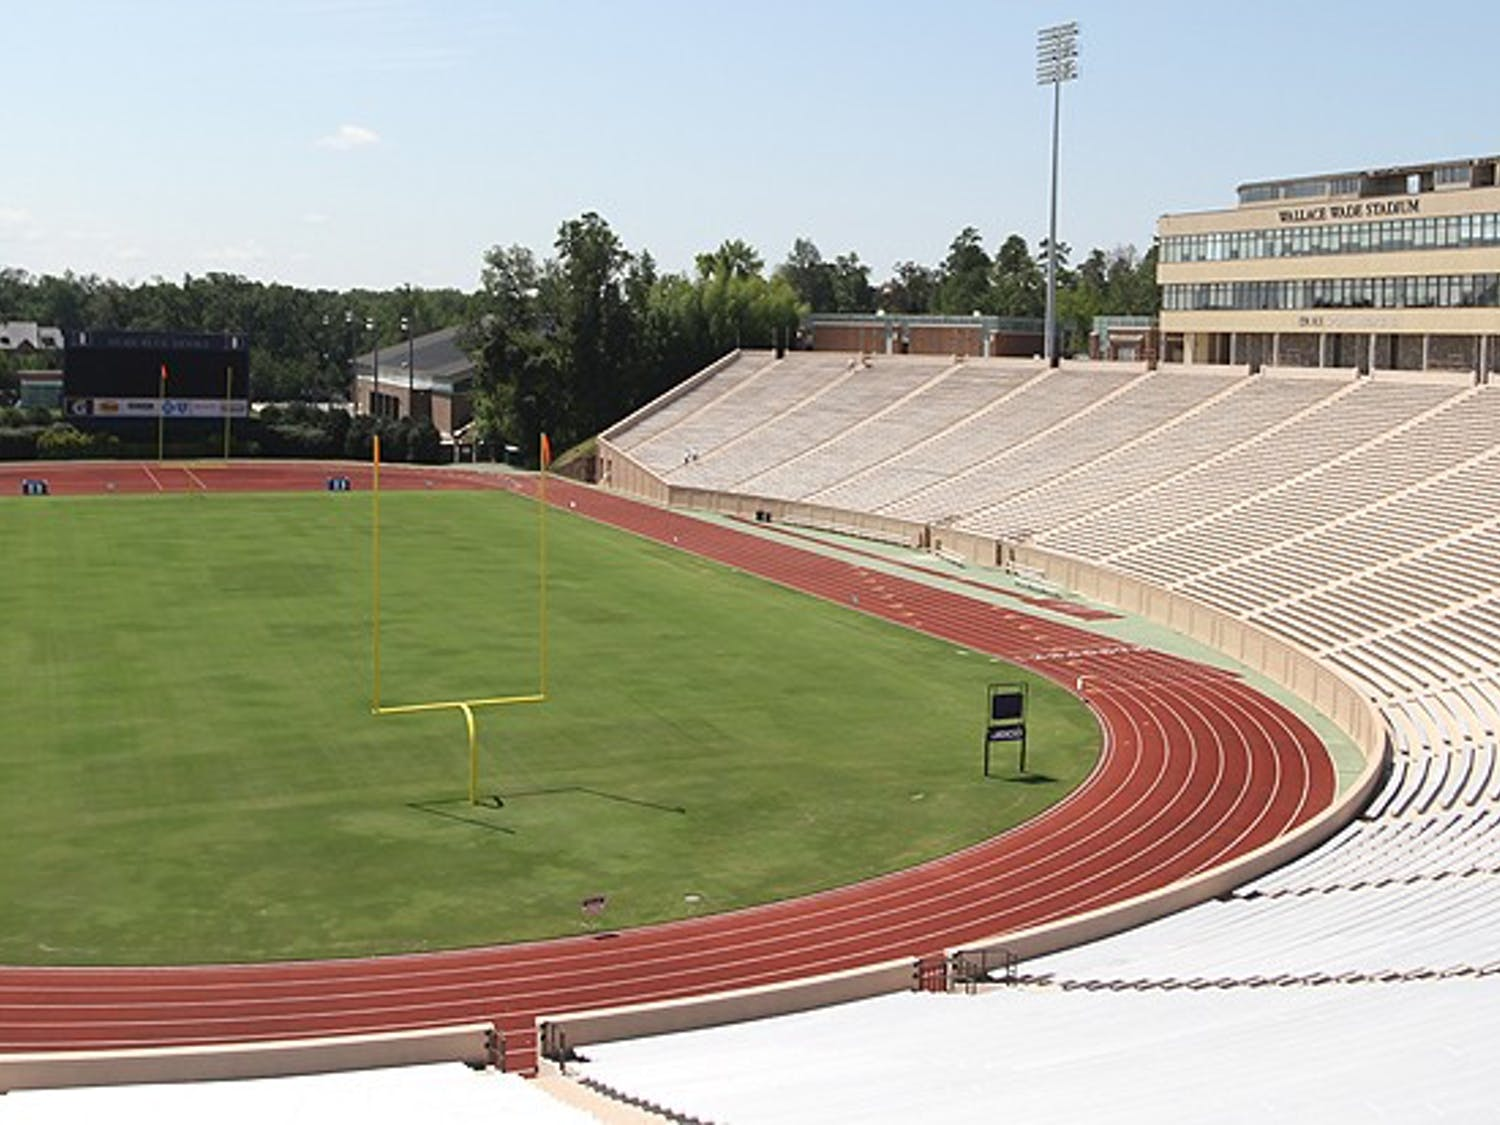 One of Duke Forward's goals is to complete Wallace Wade's bowl, upping the seating capacity to 44,000.